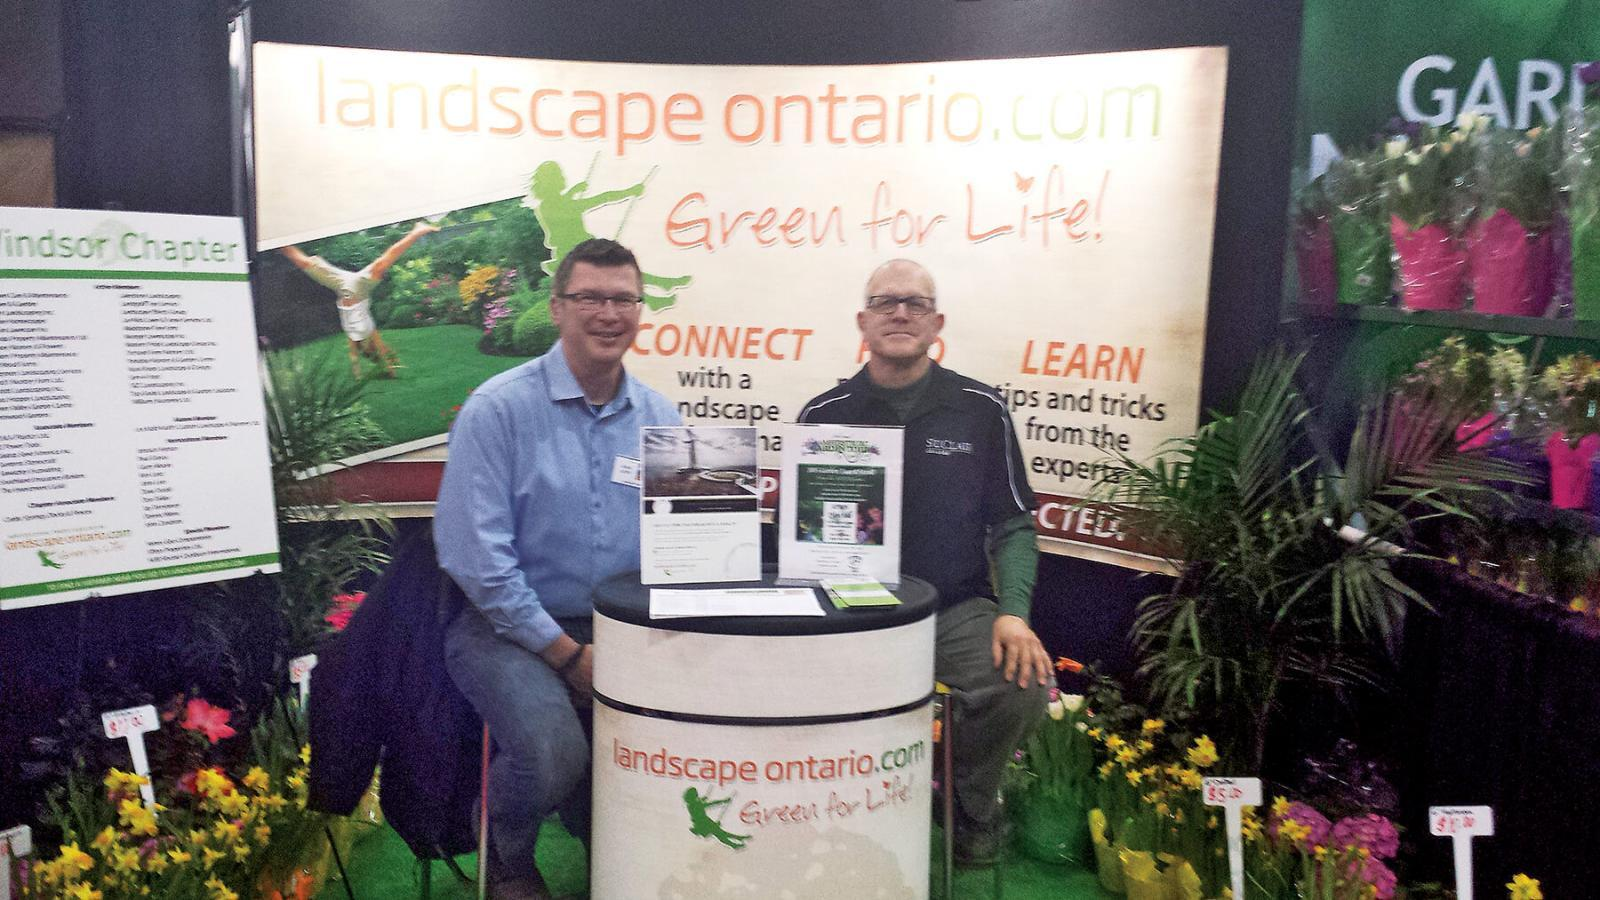 John Lien, left, and Jay Terryberry were among Windsor Chapter members who manned the information booth at the Windsor Home and Garden Show.